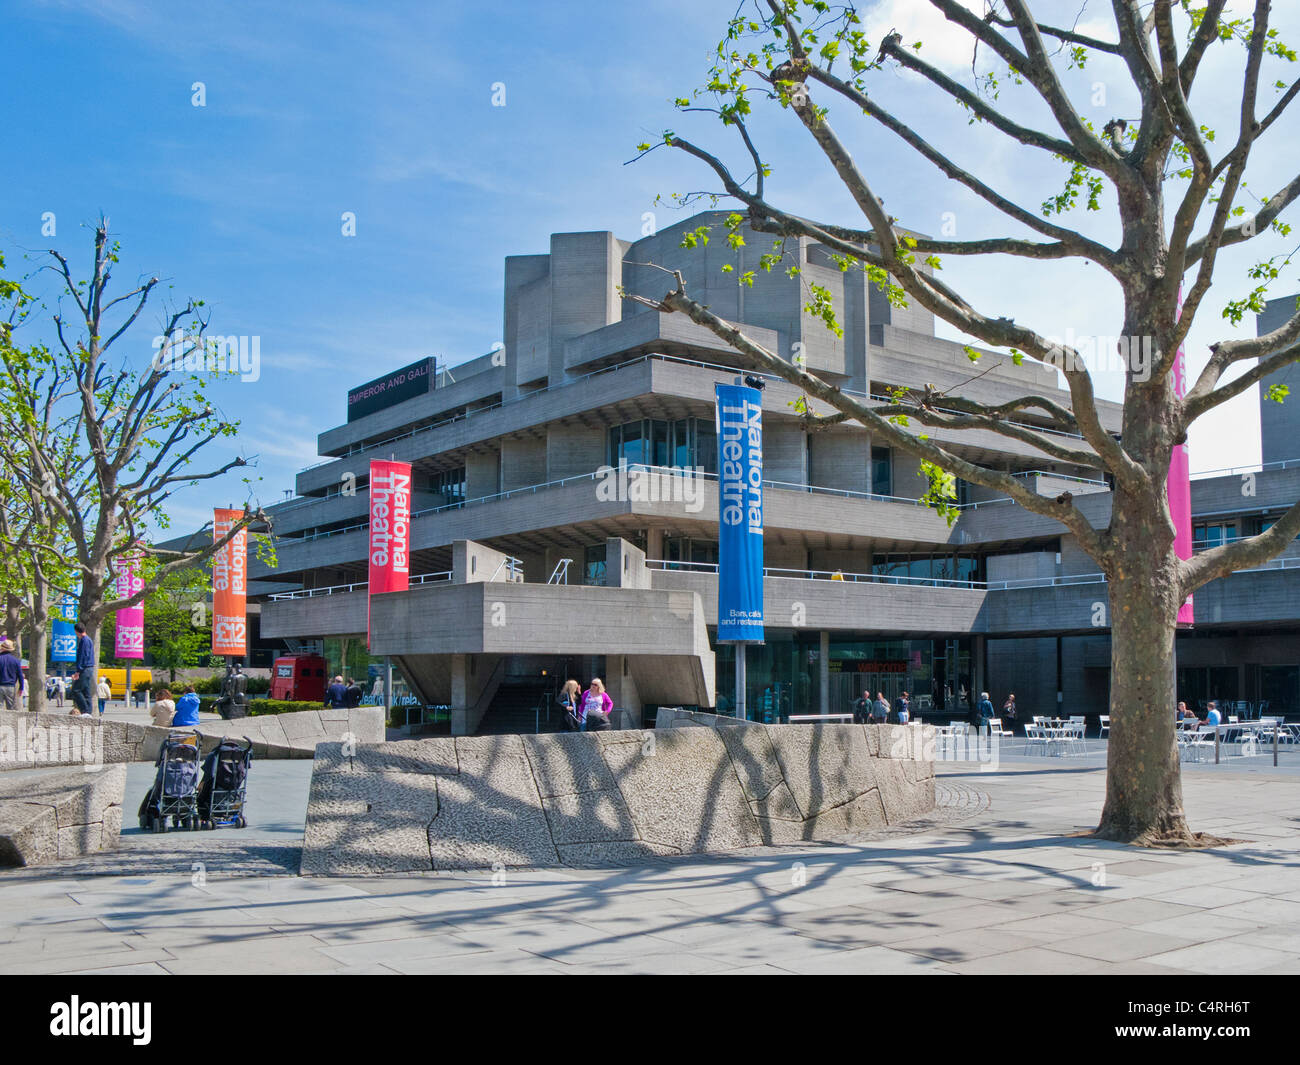 National Theatre, South Bank, London - Stock Image